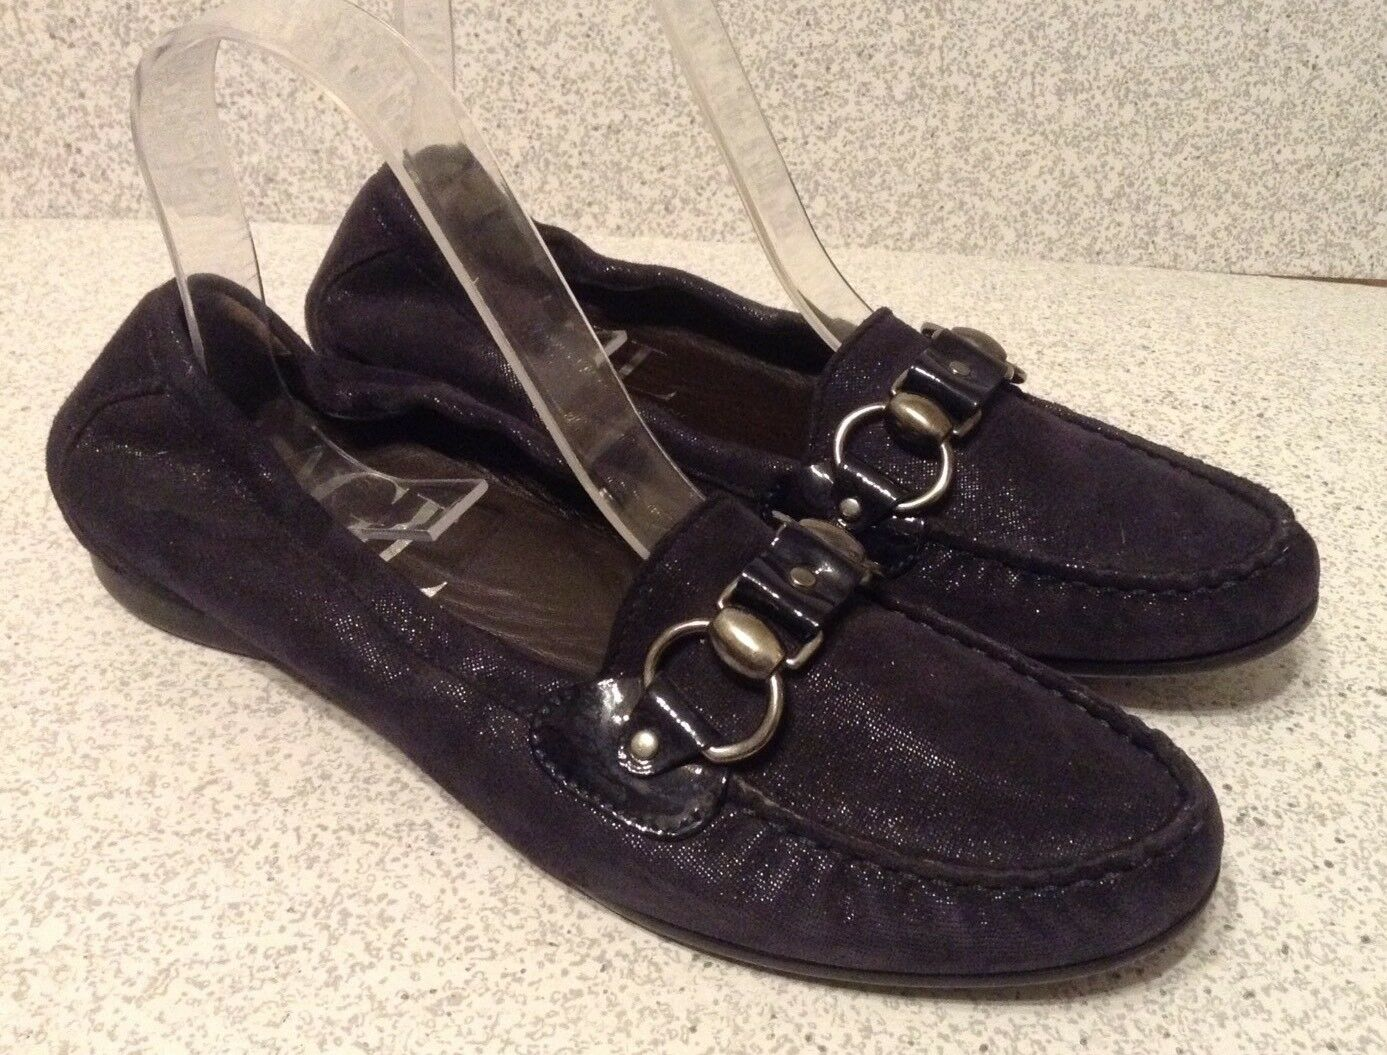 Attilio Giusti Leombruni Women's Loafers Size 39 Black Metallic Suede Leather